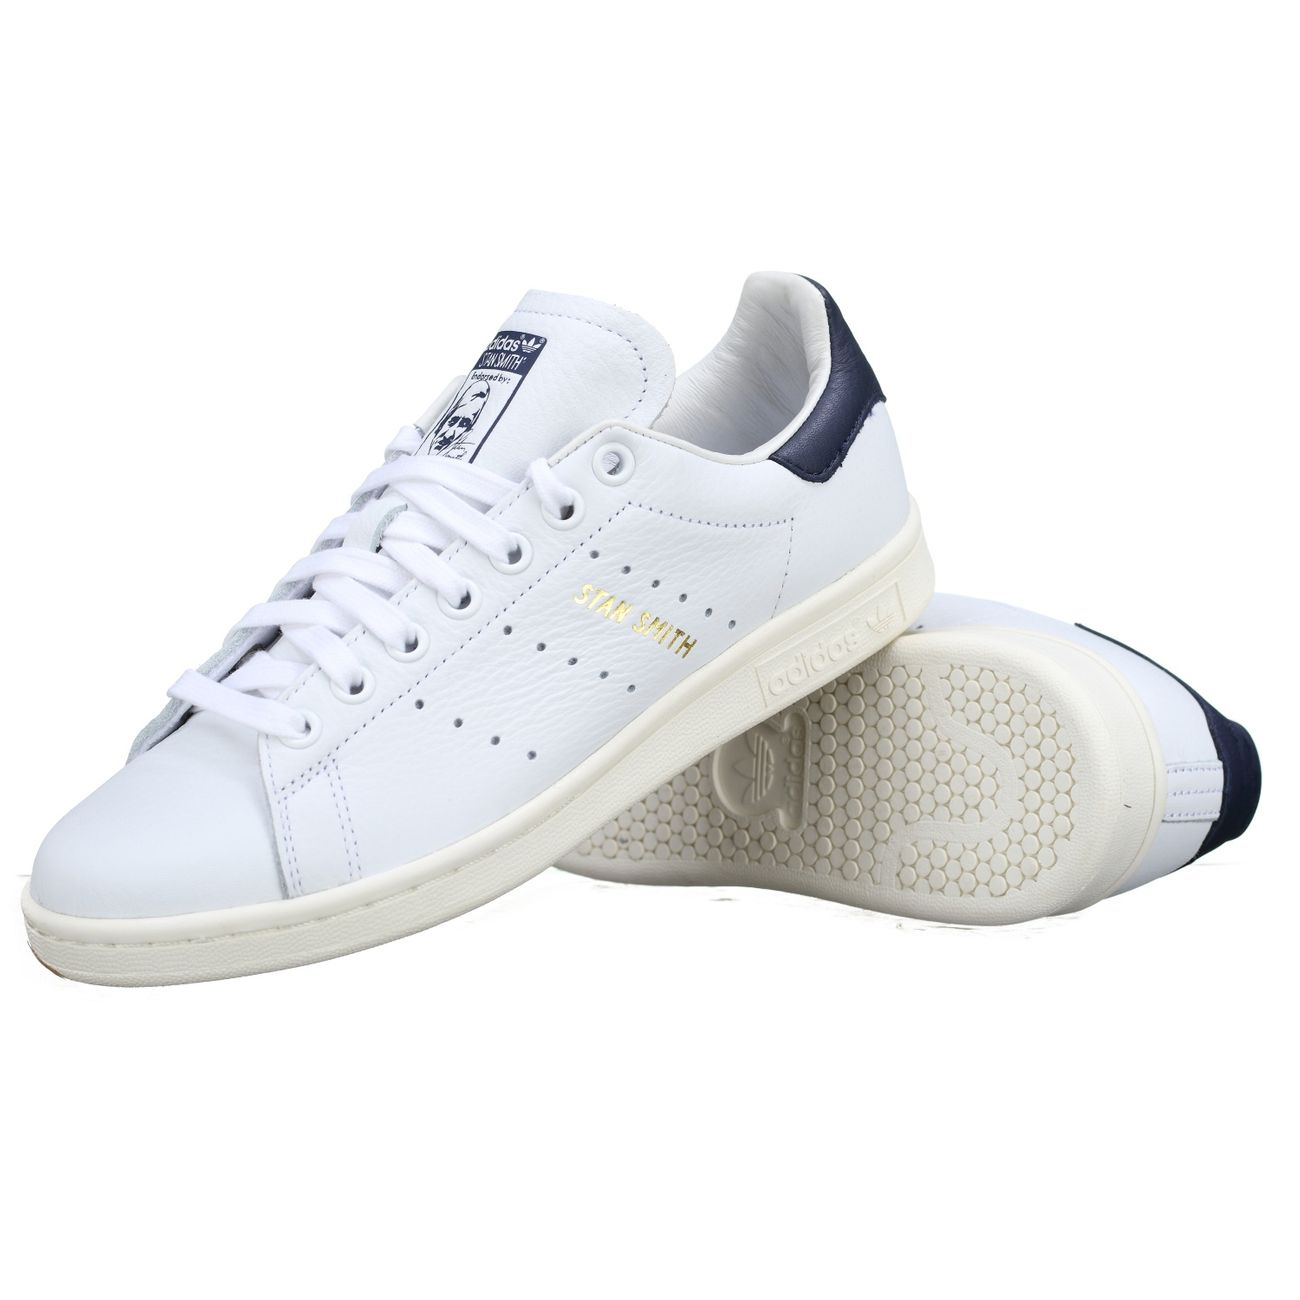 Mode Lifestyle homme ADIDAS Basket Adidas Stan Smith Cq2870 Blanc Marine